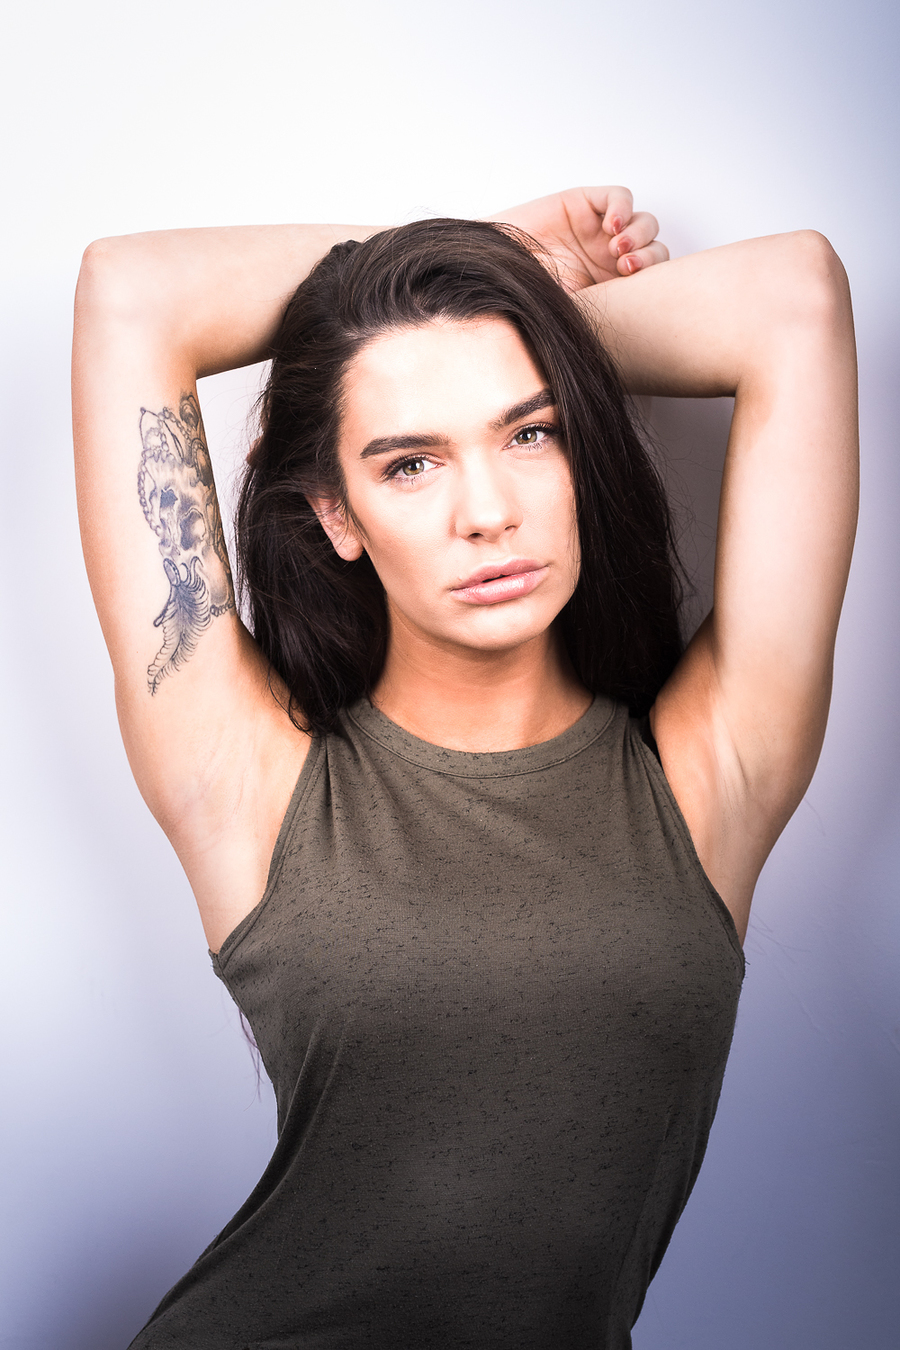 Alex and tattoo / Photography by Mark Nesbit, Post processing by Mark Nesbit / Uploaded 23rd October 2018 @ 07:56 AM